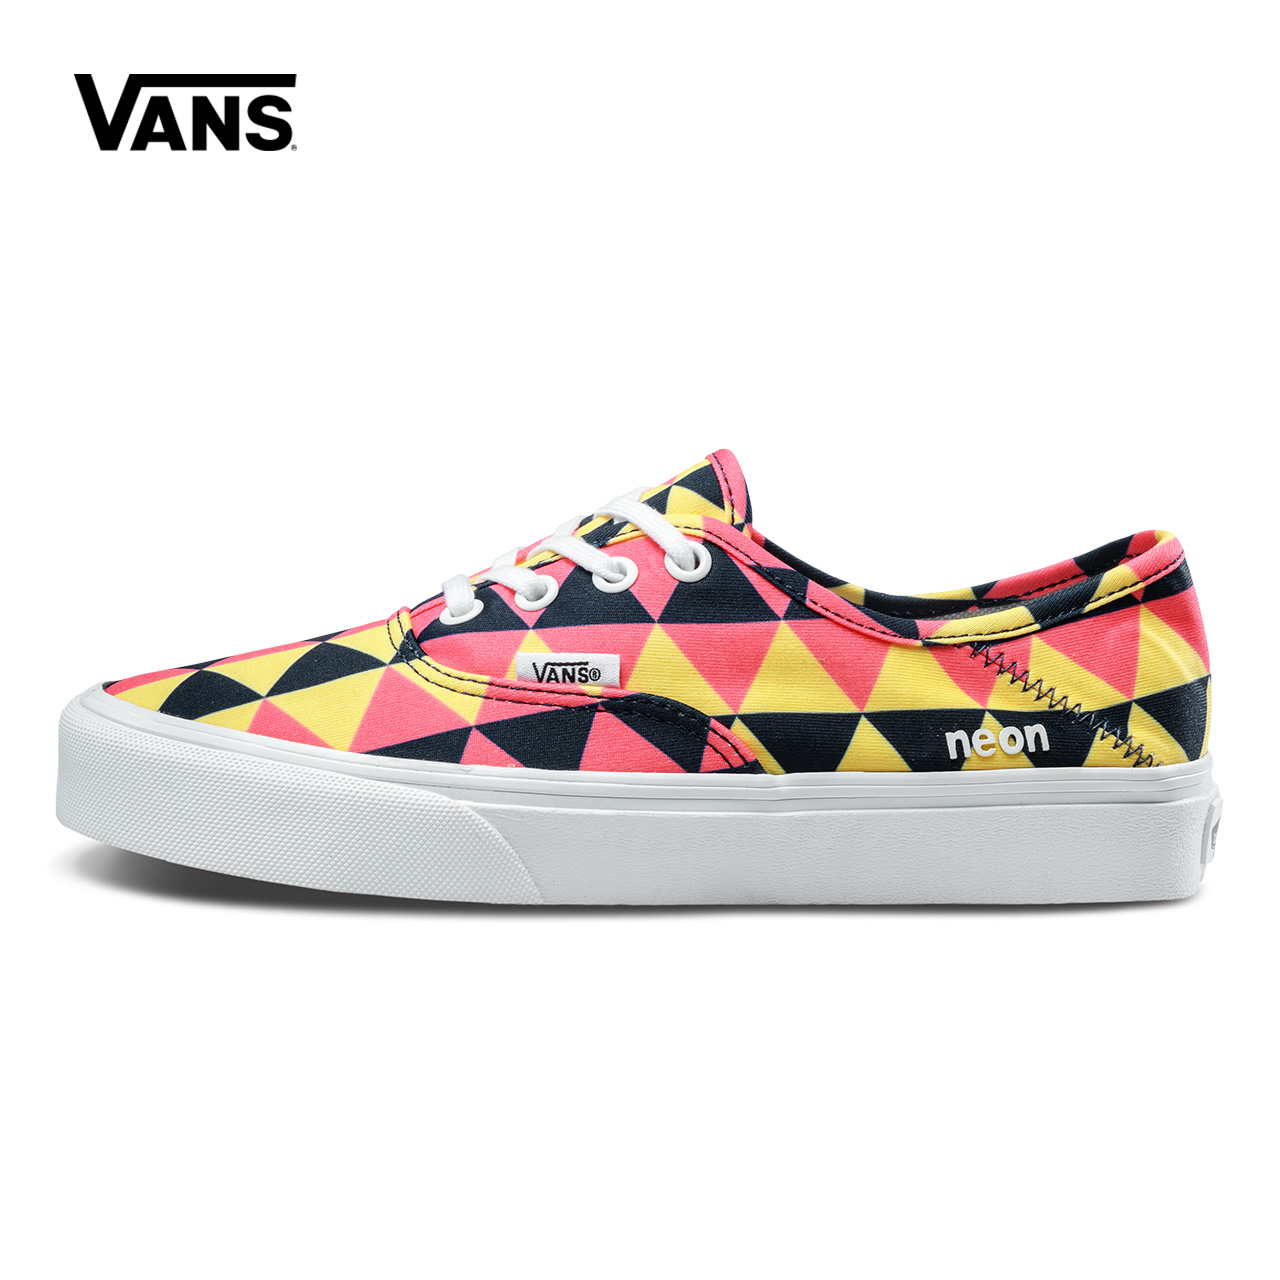 Colorful Geometry Vans Sneakers Women Low-top Skateboarding Shoes Sneakers Canvas Sport Classic Canvas Shoes VN0A3MU6QB8 new converse chuck taylor all star ii low men women s sneakers canvas shoes classic pure color skateboarding shoes 150149c